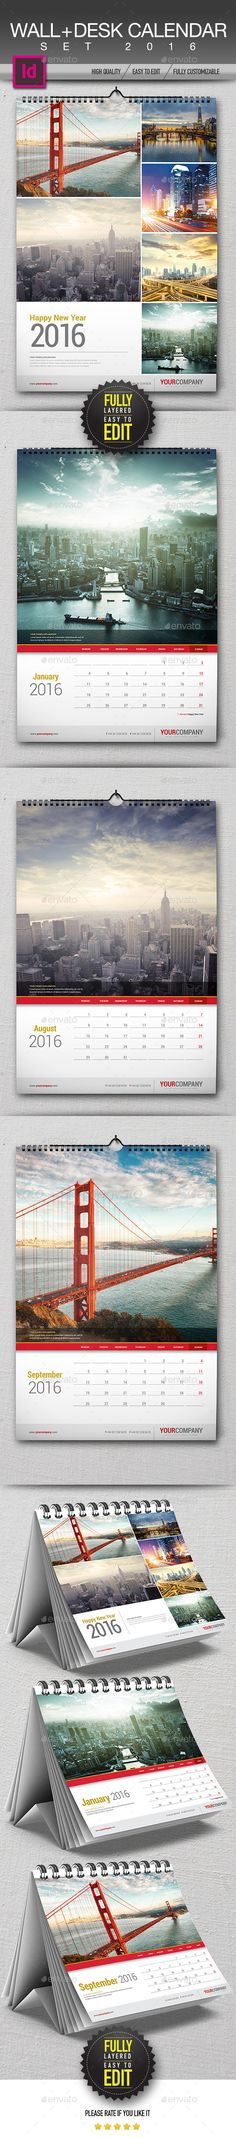 Wall + Desk Calendar 2016 Template InDesign INDD #design Download: http://graphicriver.net/item/wall-desk-calendar-2016/13236673?ref=ksioks